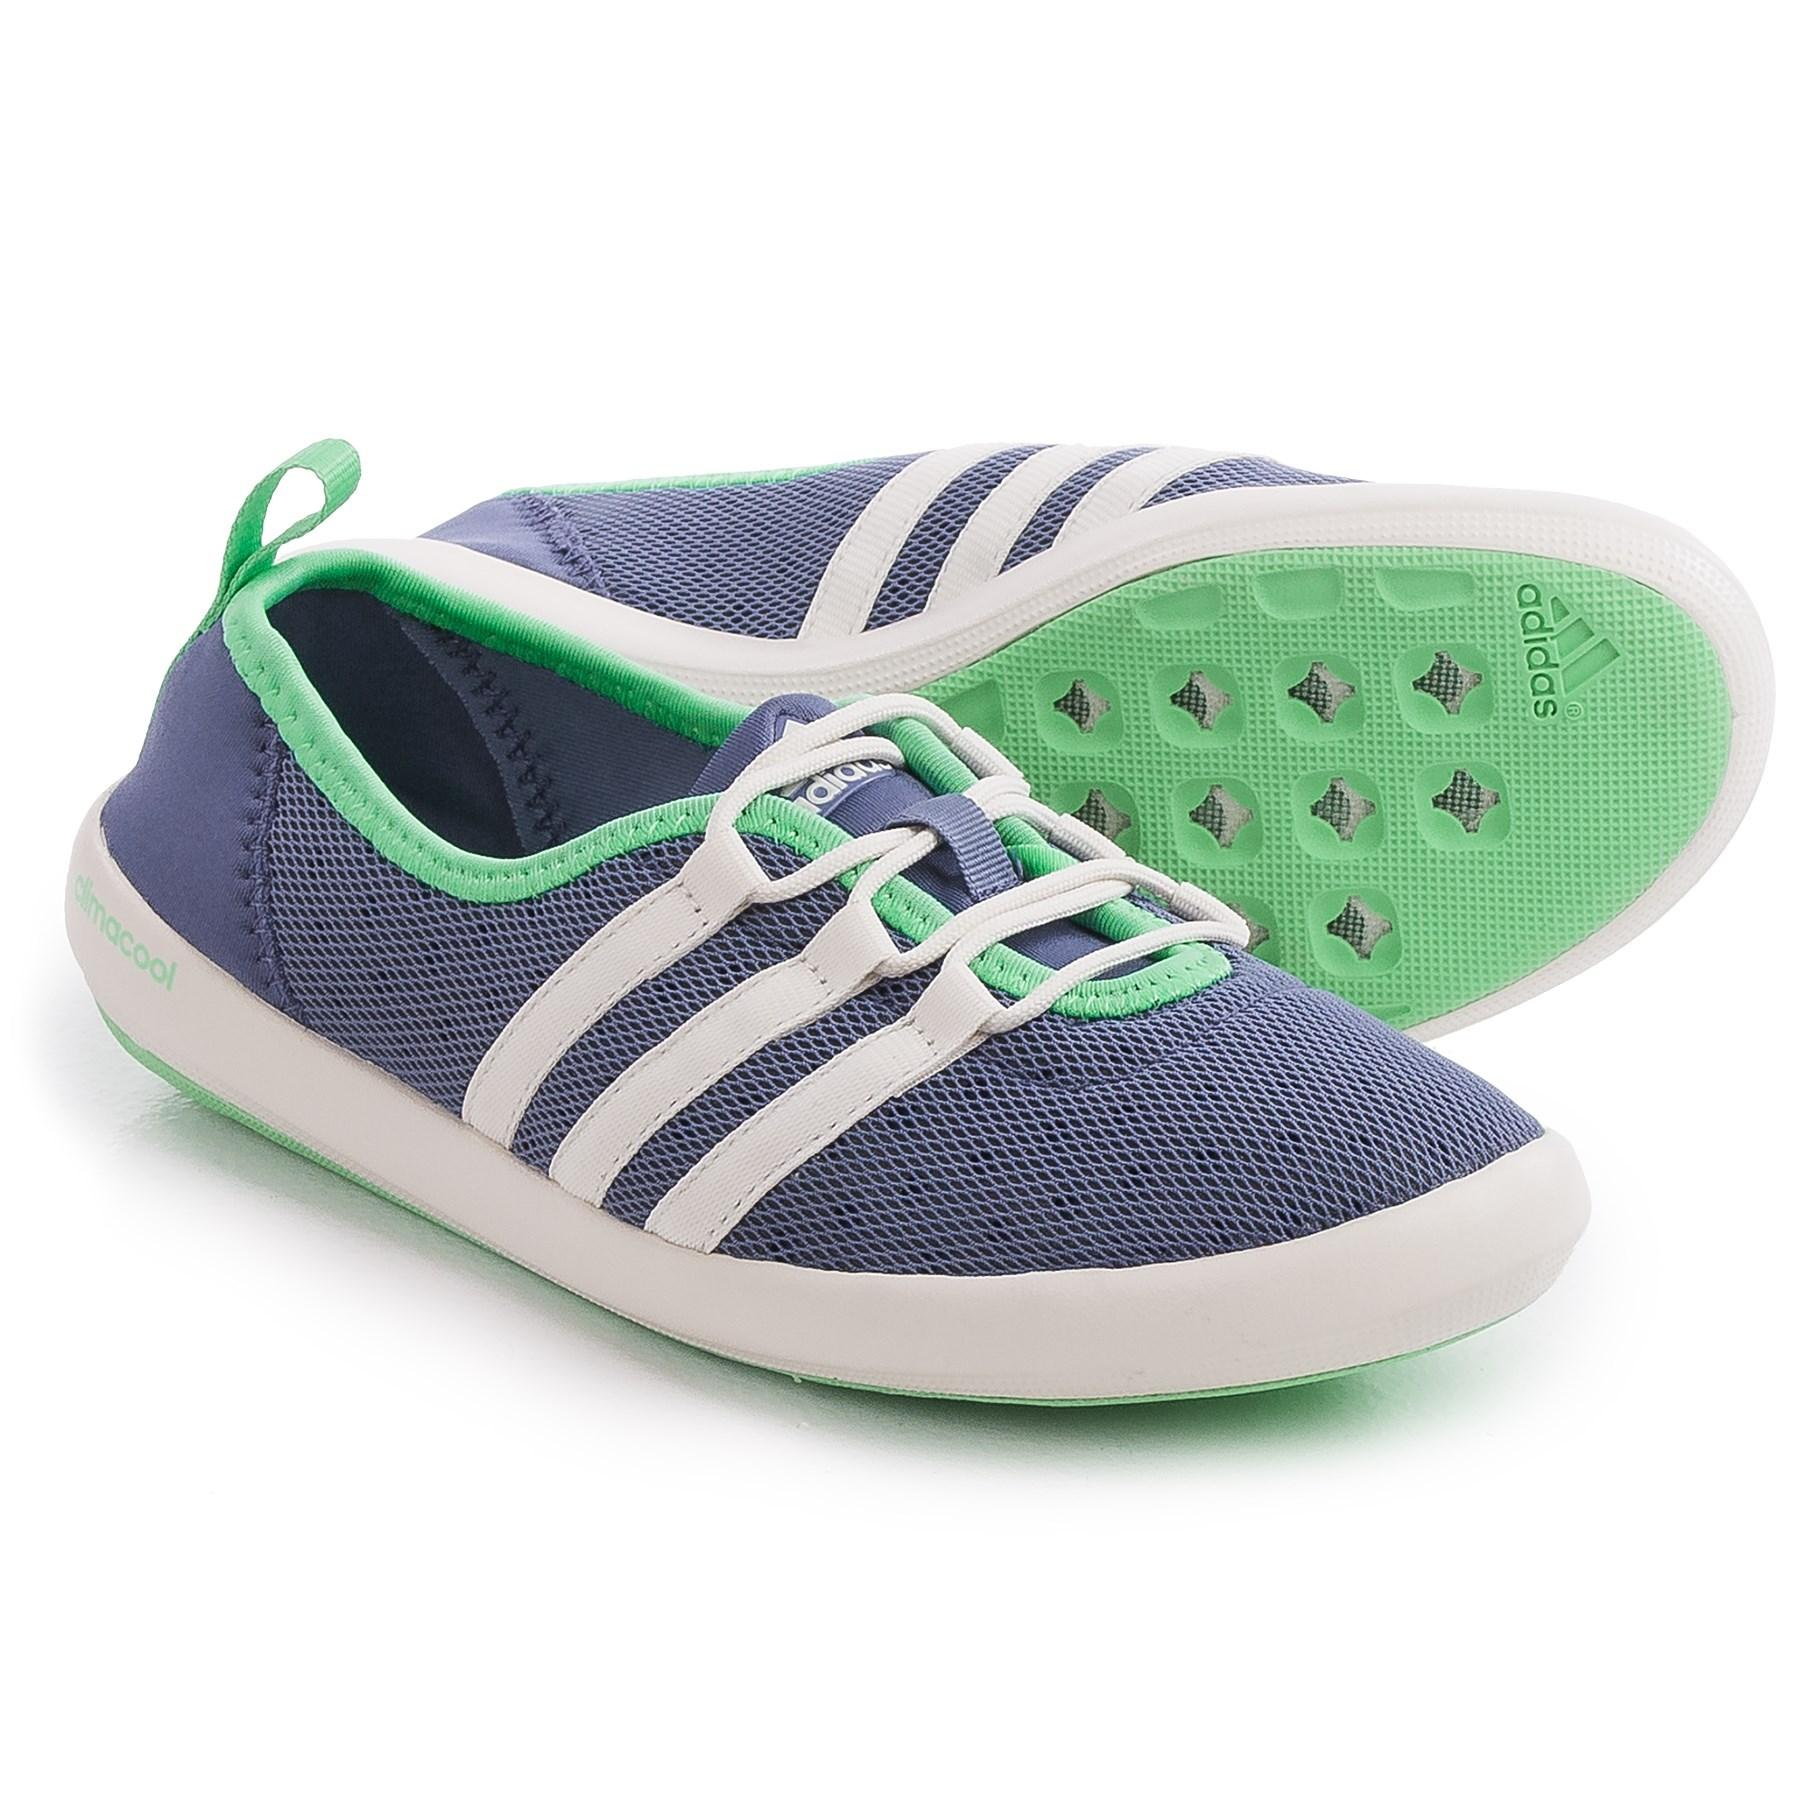 Women's adidas Outdoor Climacool Boat Sleek Water Shoe